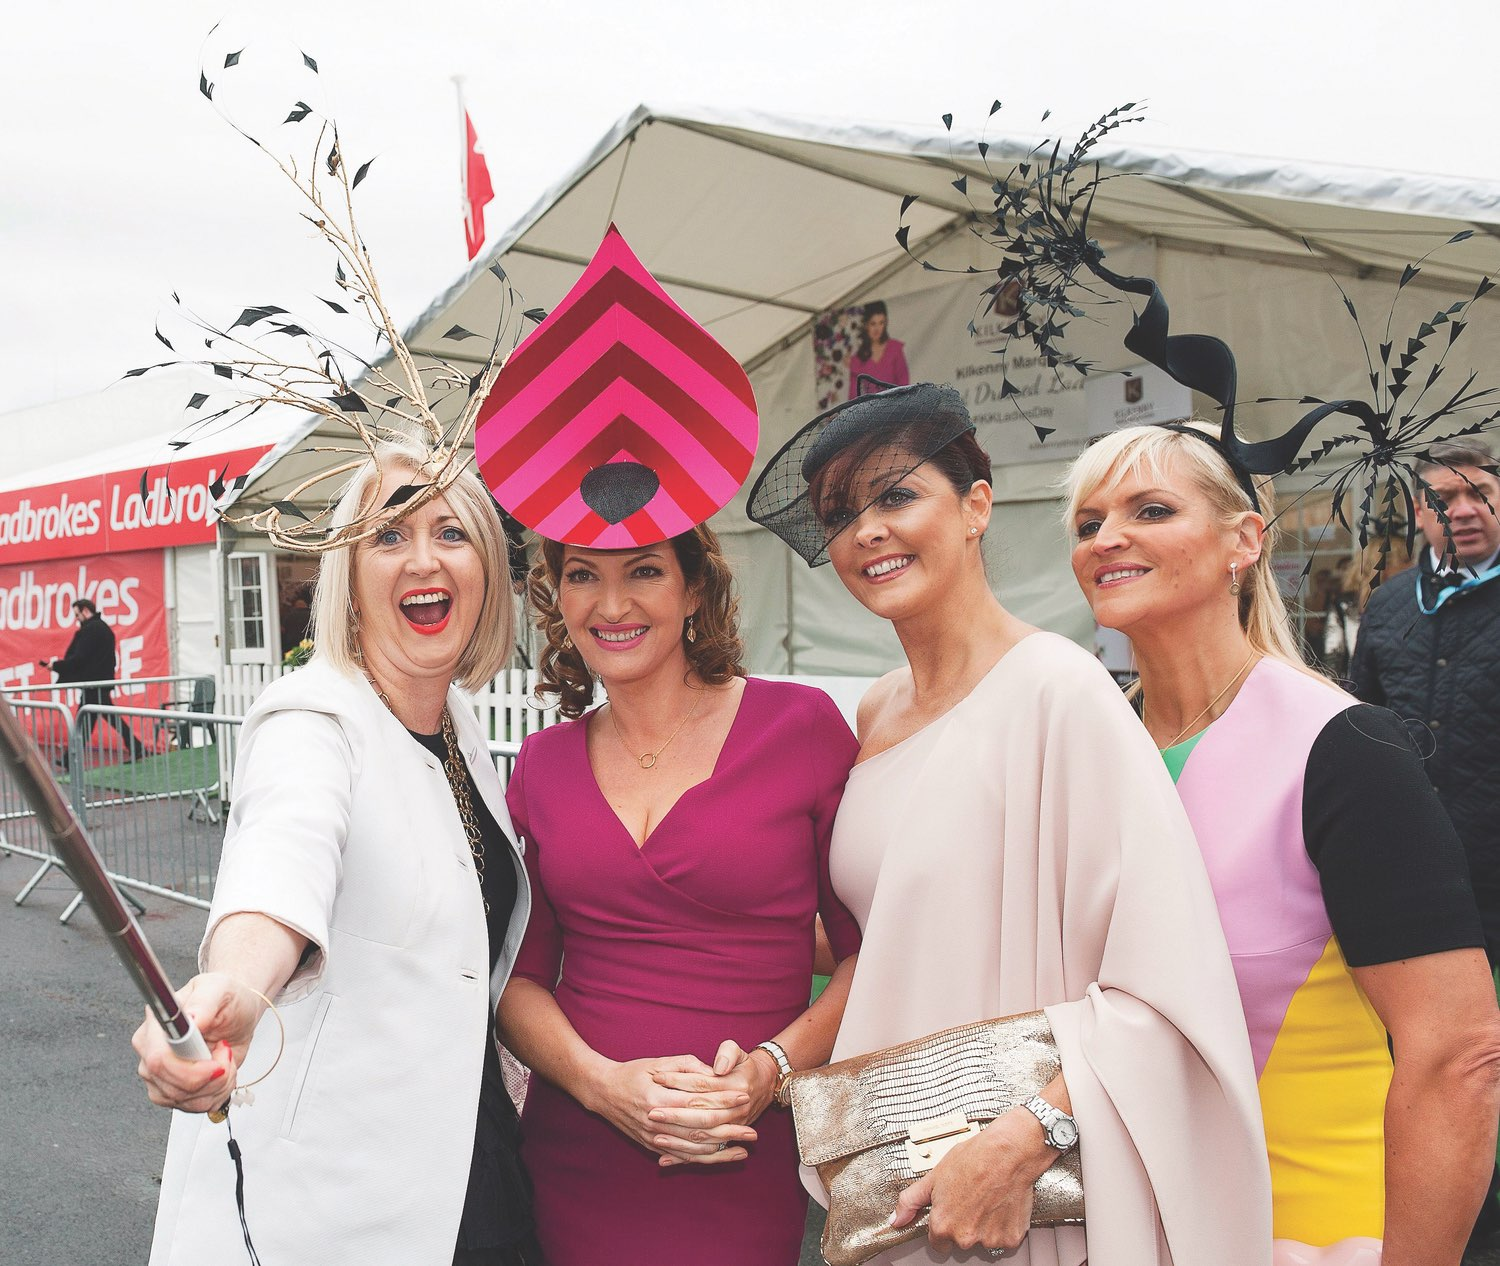 Attendees pose for a selfie adorning their couture hats.